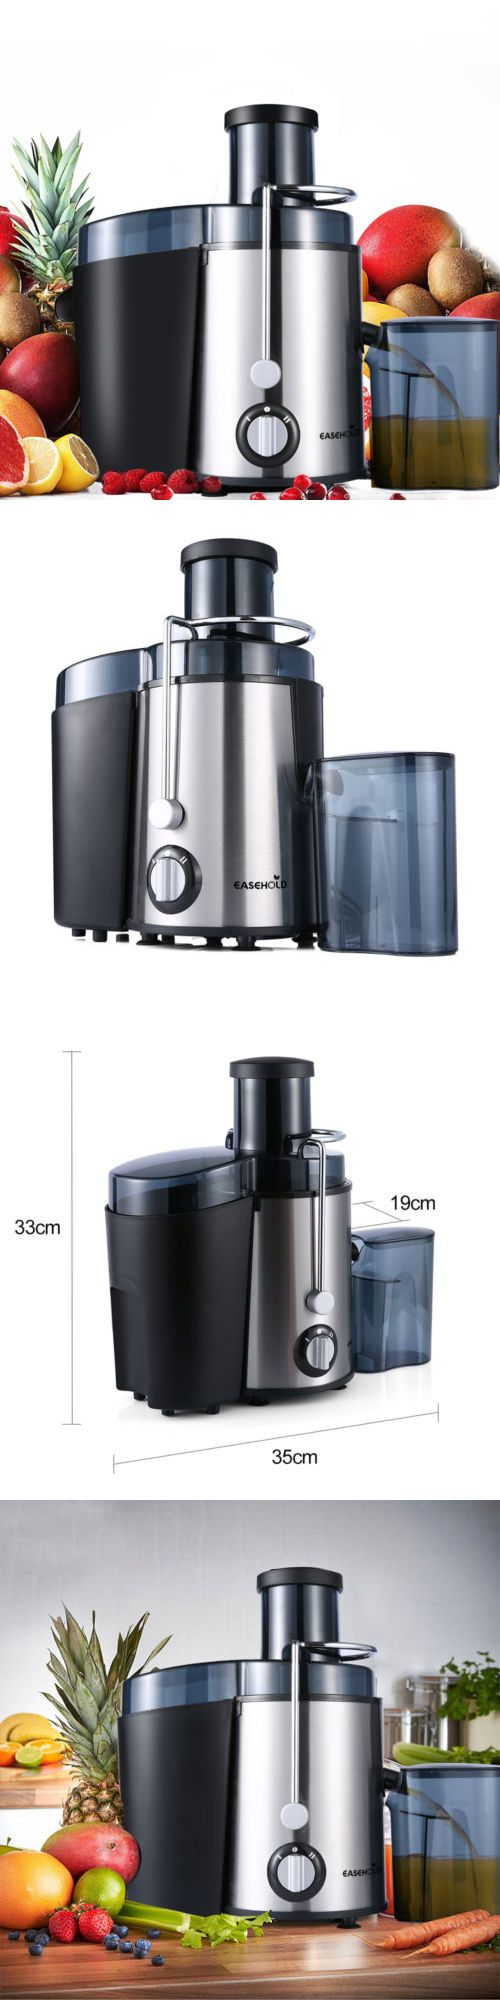 Kitchen small appliances made in usa - Small Kitchen Appliances Usa Stock Electric Fruit Vegetable Juicer Extractor Juice Maker Machine 2 Speeds